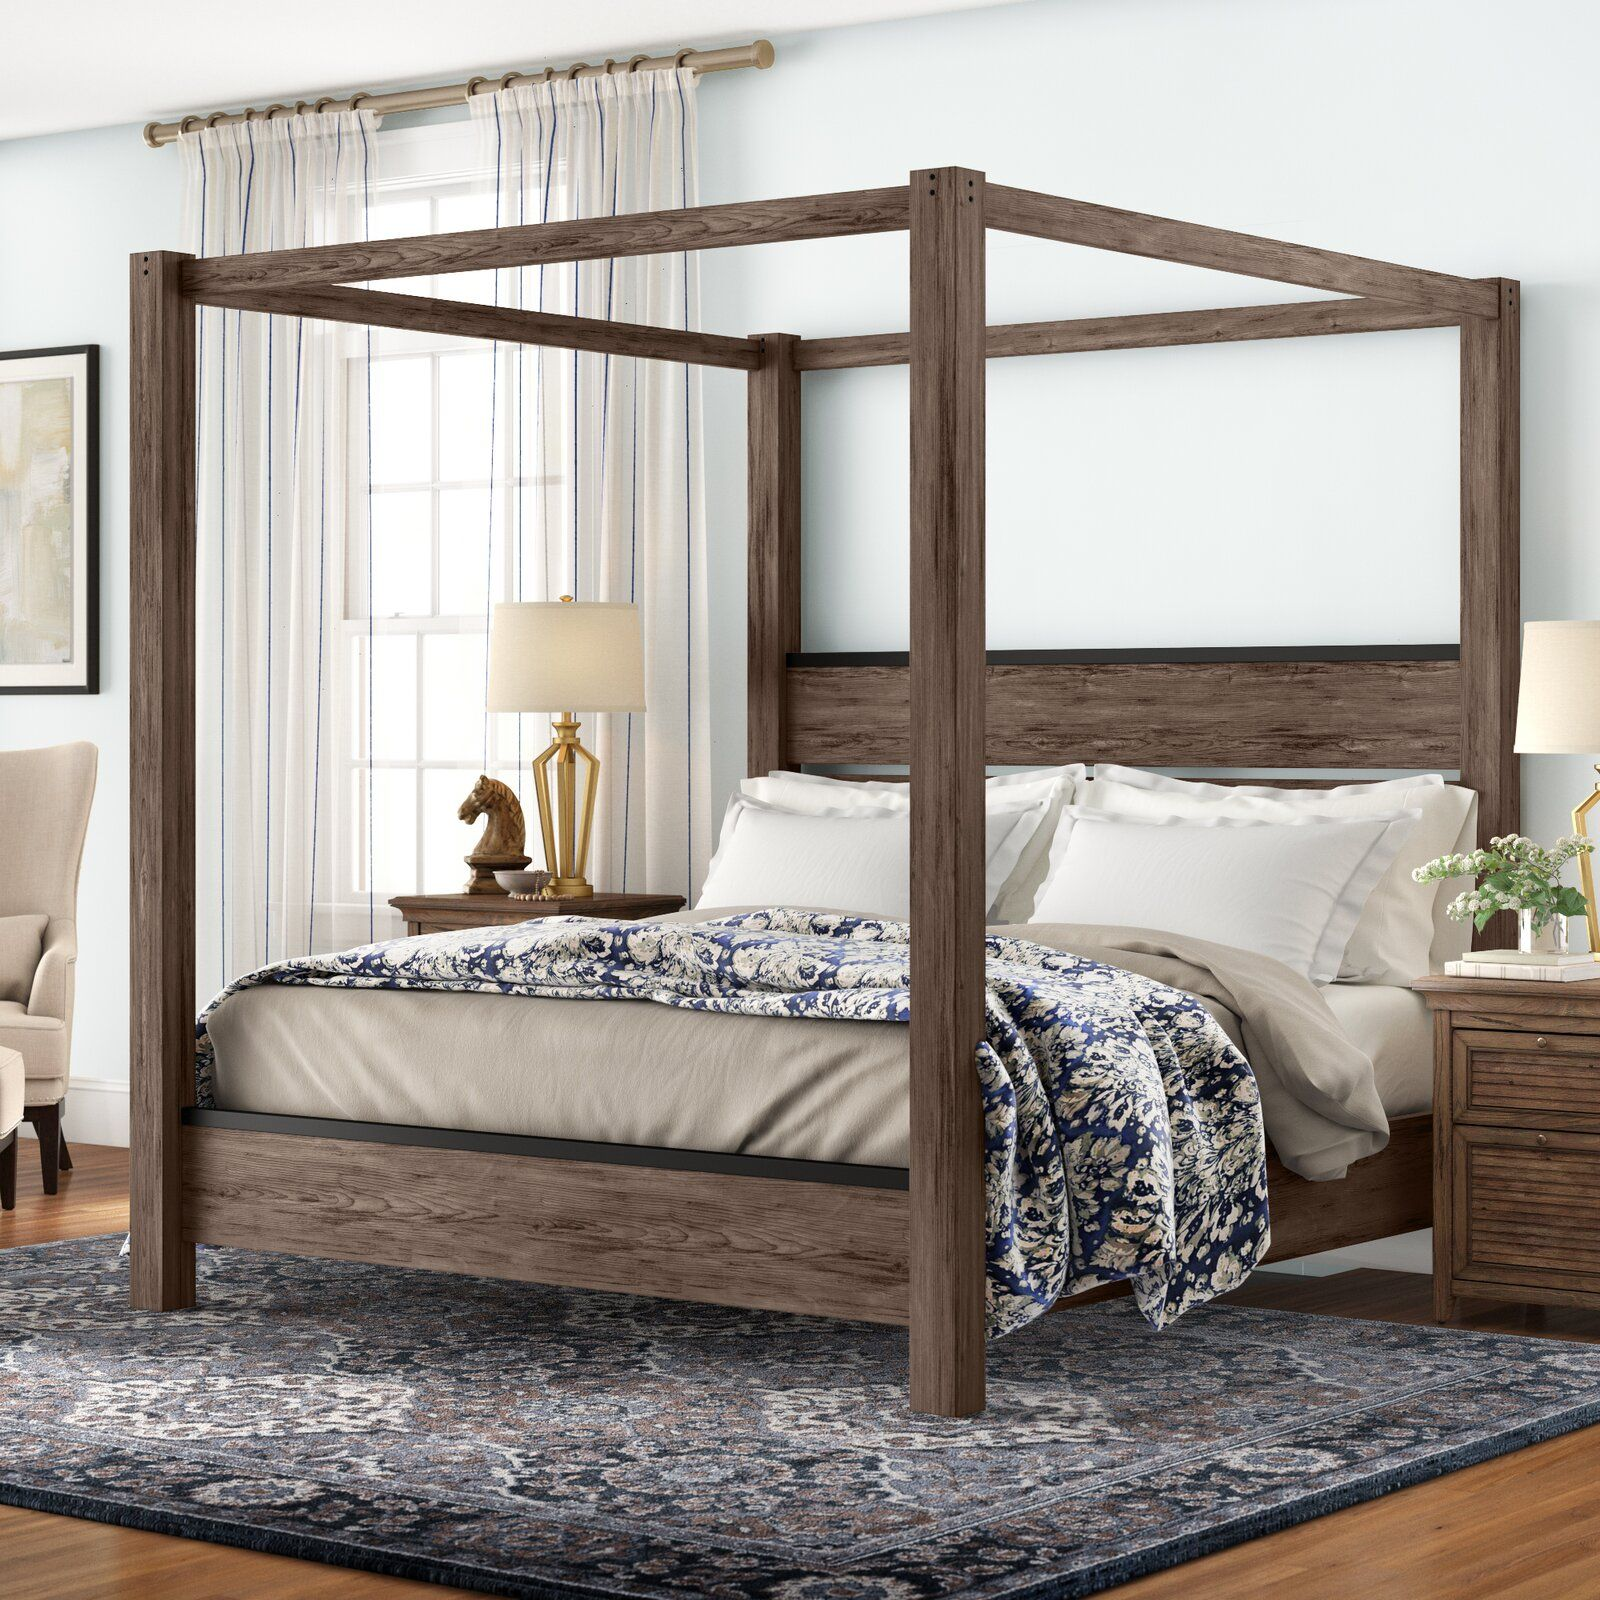 Bartow canopy bed in 2020 canopy bed frame modern